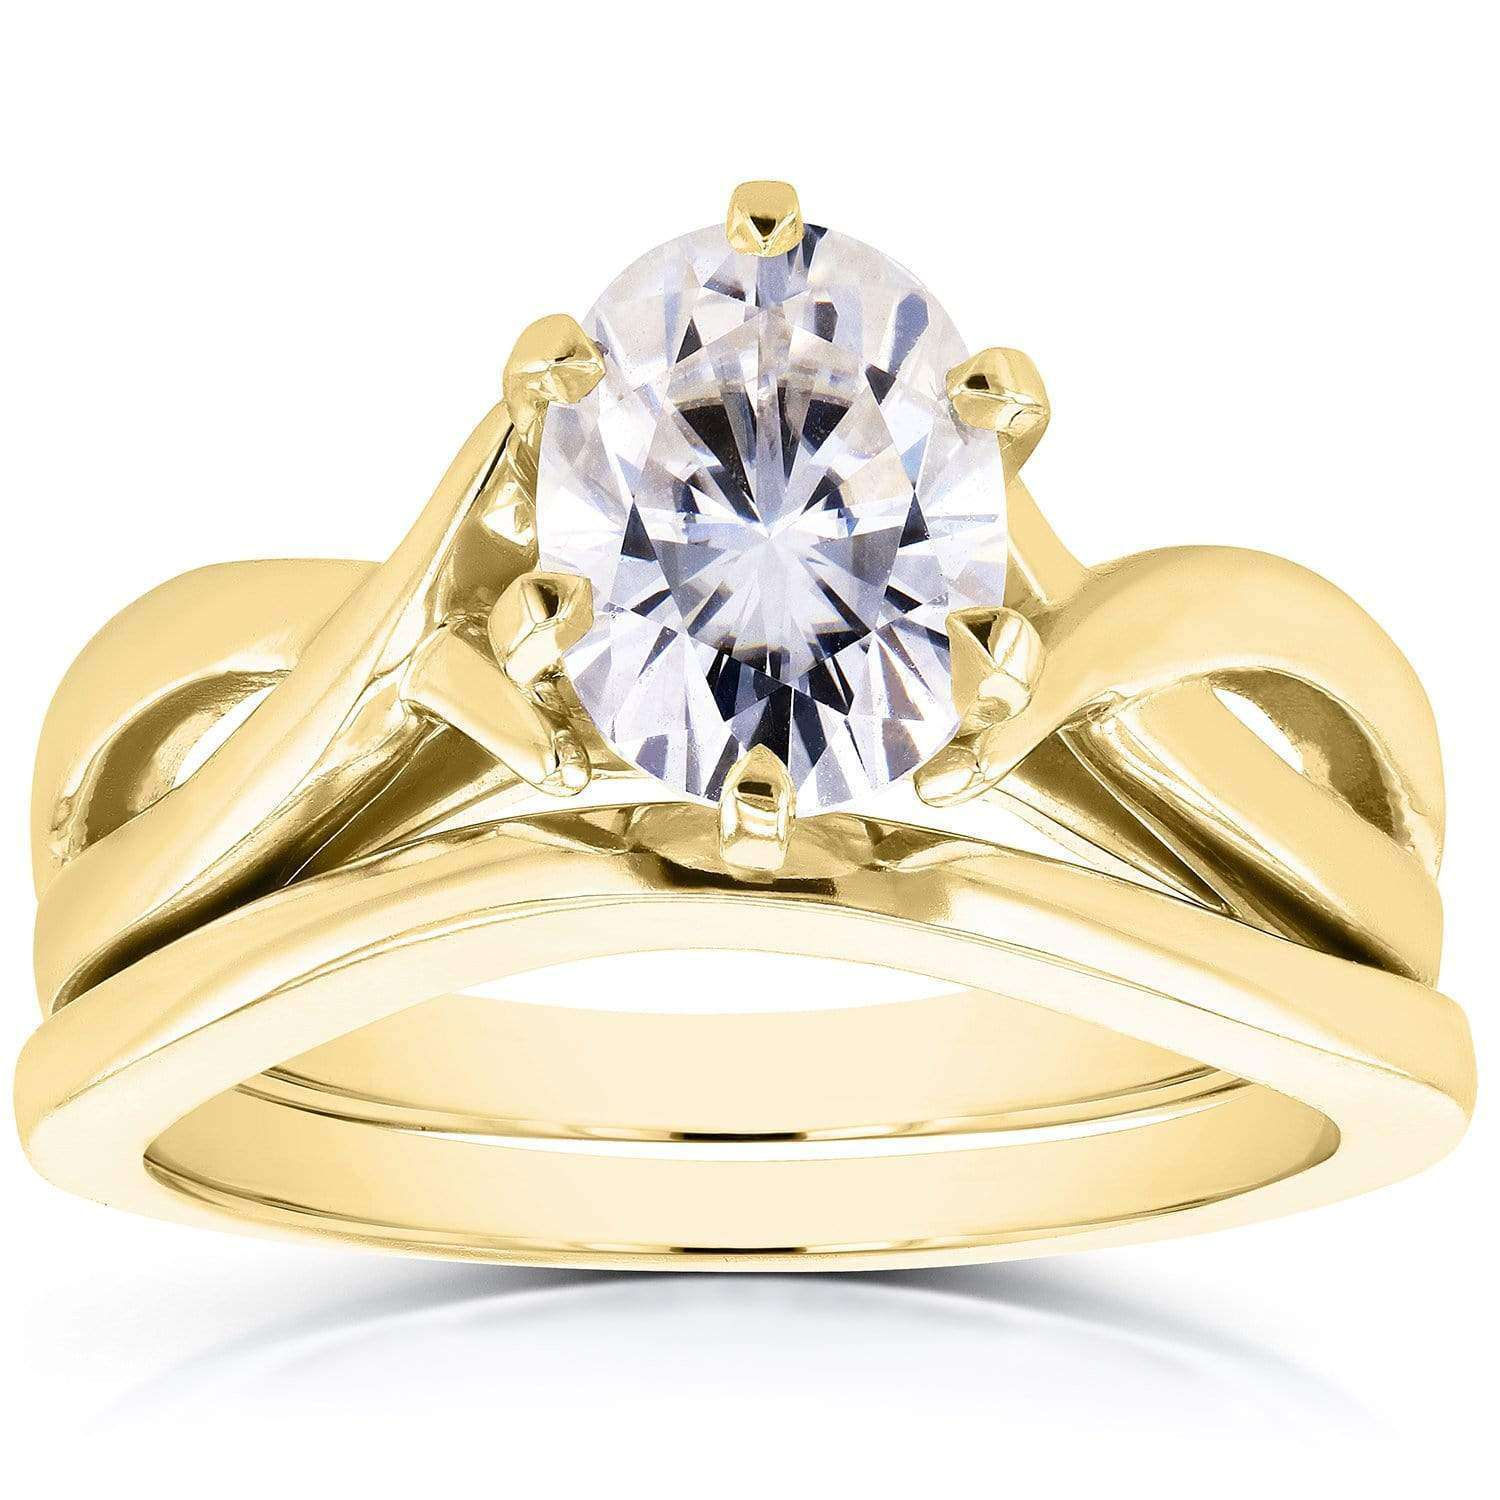 Cheap Near-Colorless (F-G) Oval Moissanite Solitaire Crossover Bridal Set 1 1/2 CTW in 14k Yellow Gold - 4.5